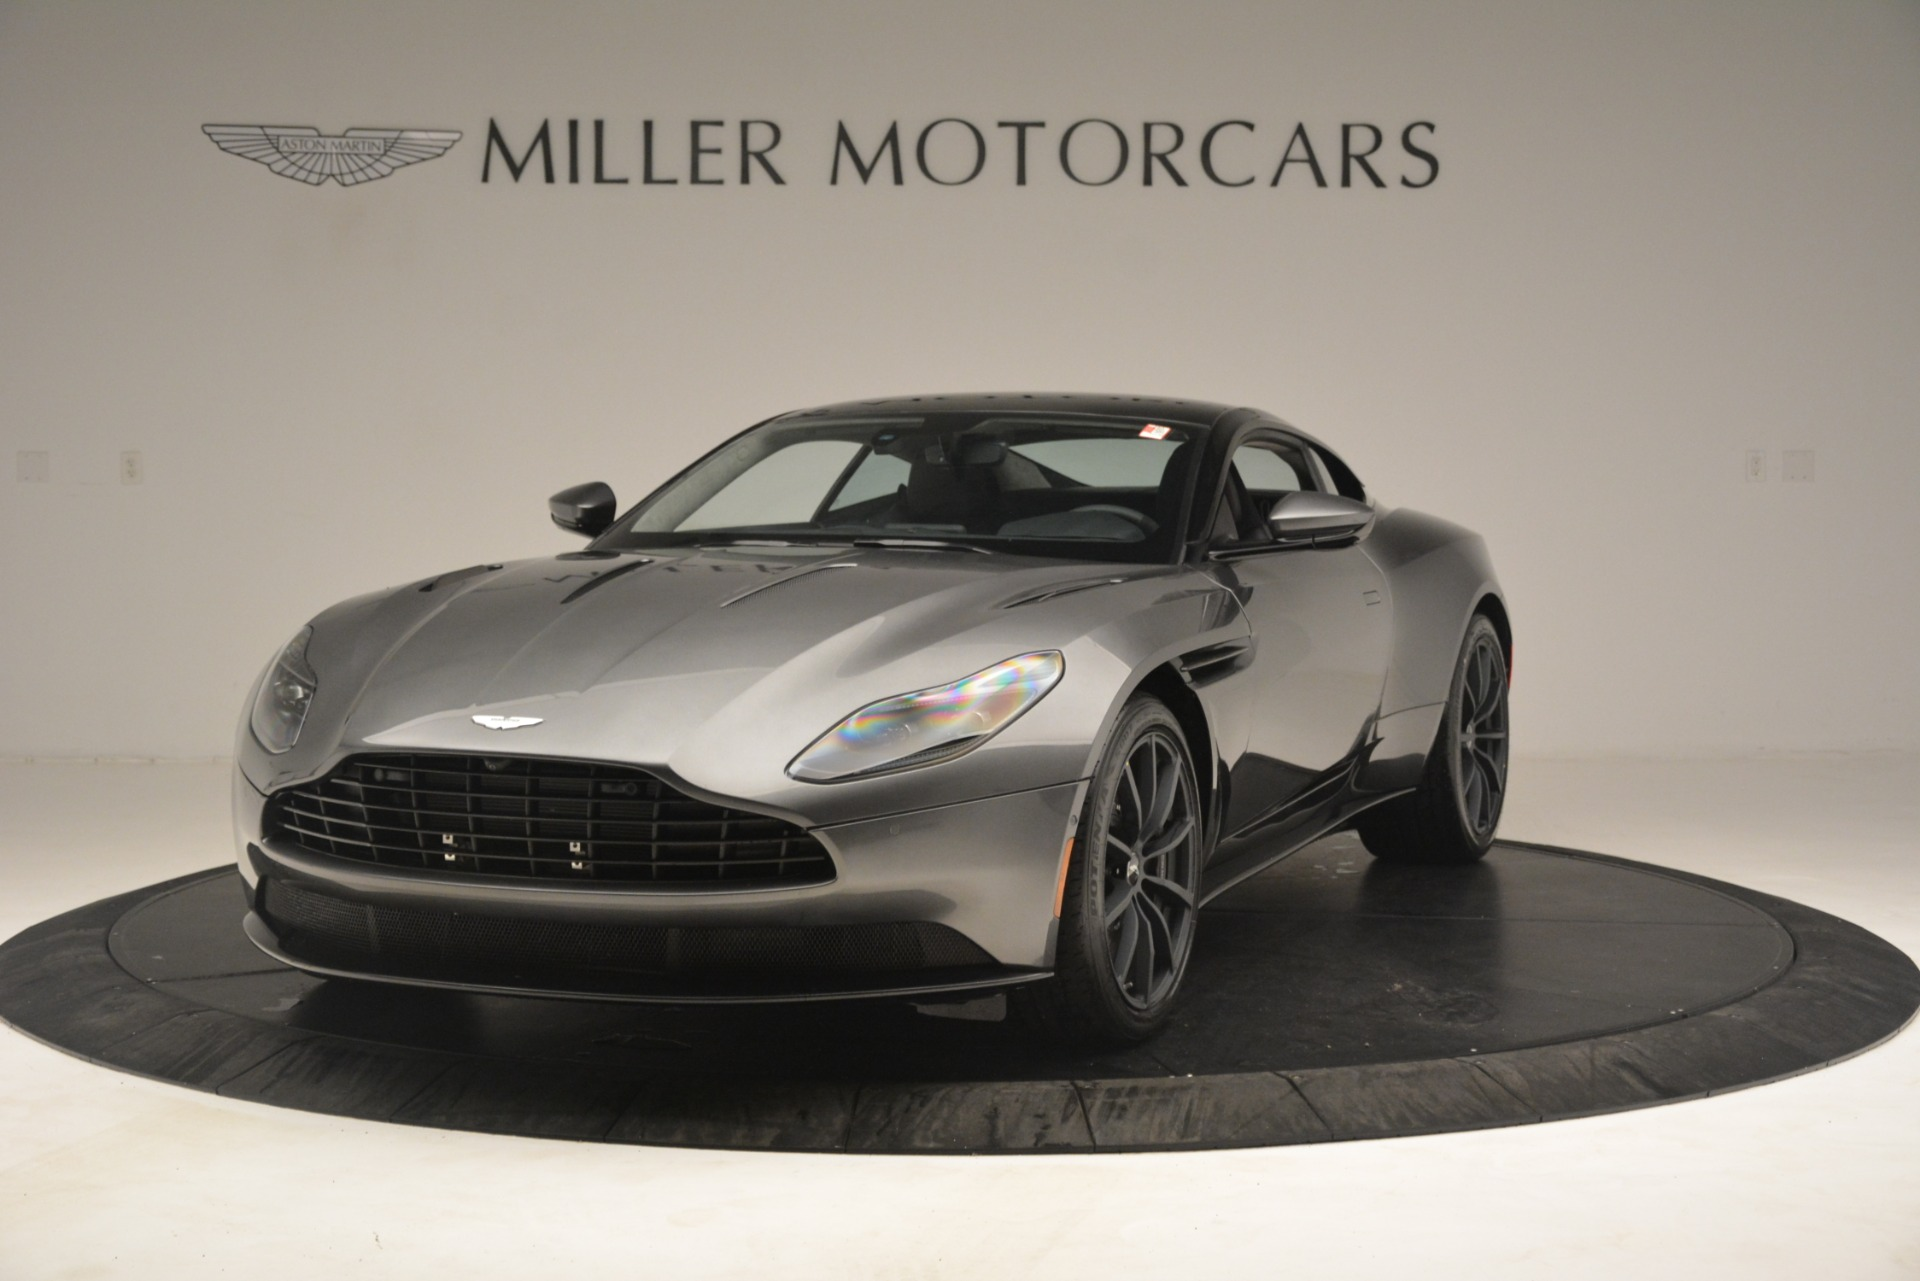 New 2019 Aston Martin DB11 V12 AMR Coupe For Sale In Greenwich, CT. Alfa Romeo of Greenwich, A1366 3123_p2